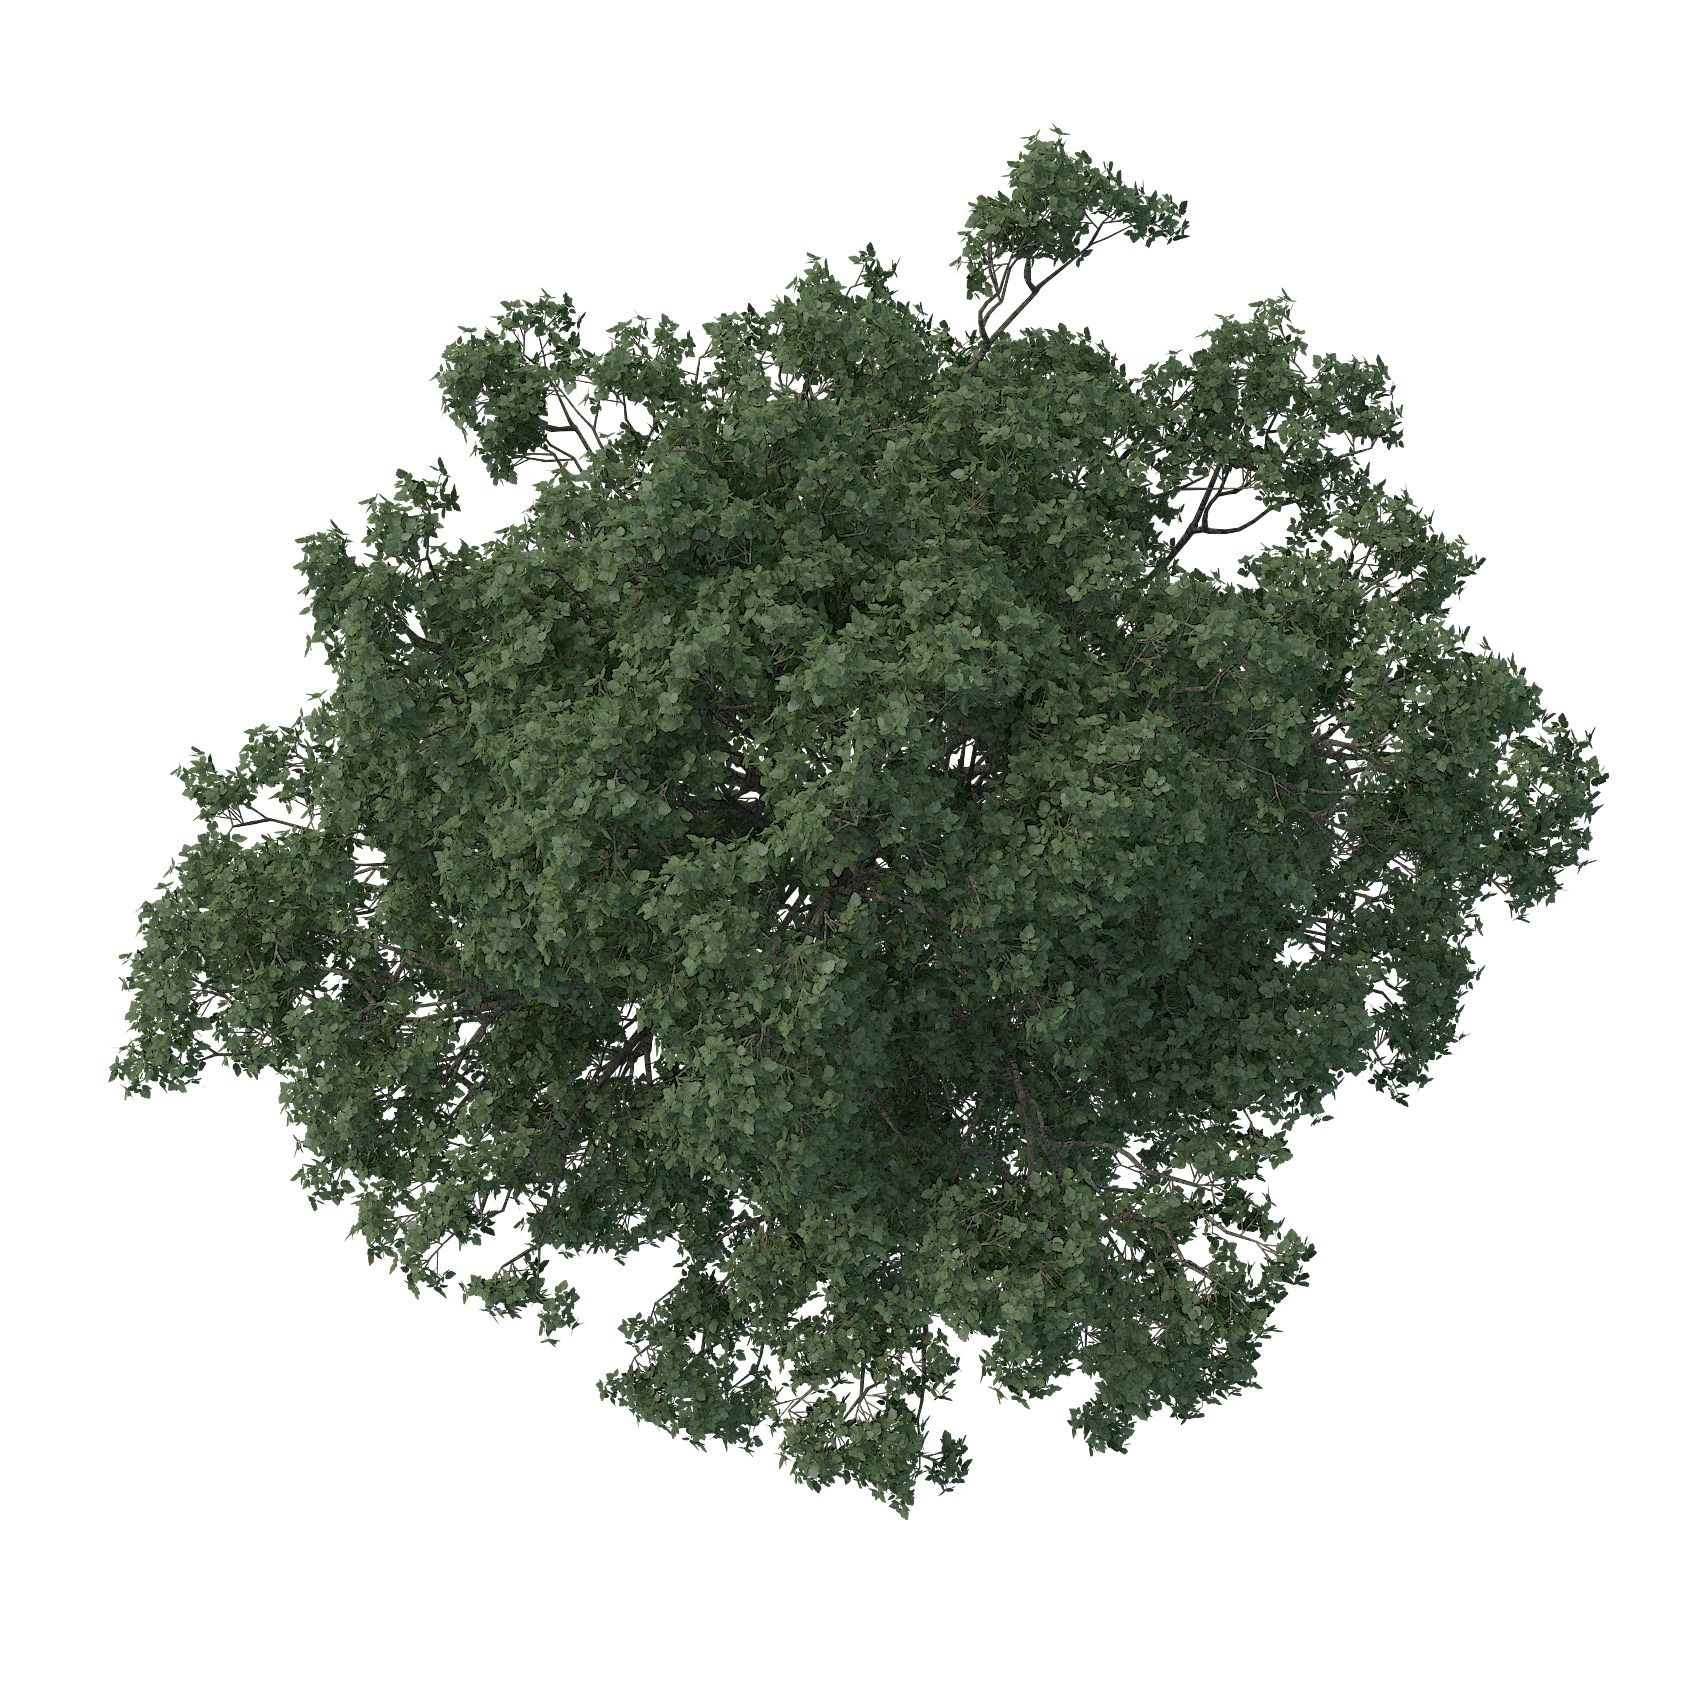 Making Of The White 3d Architectural Visualization Rendering Blog Tree Photoshop Trees Top View Tree Plan